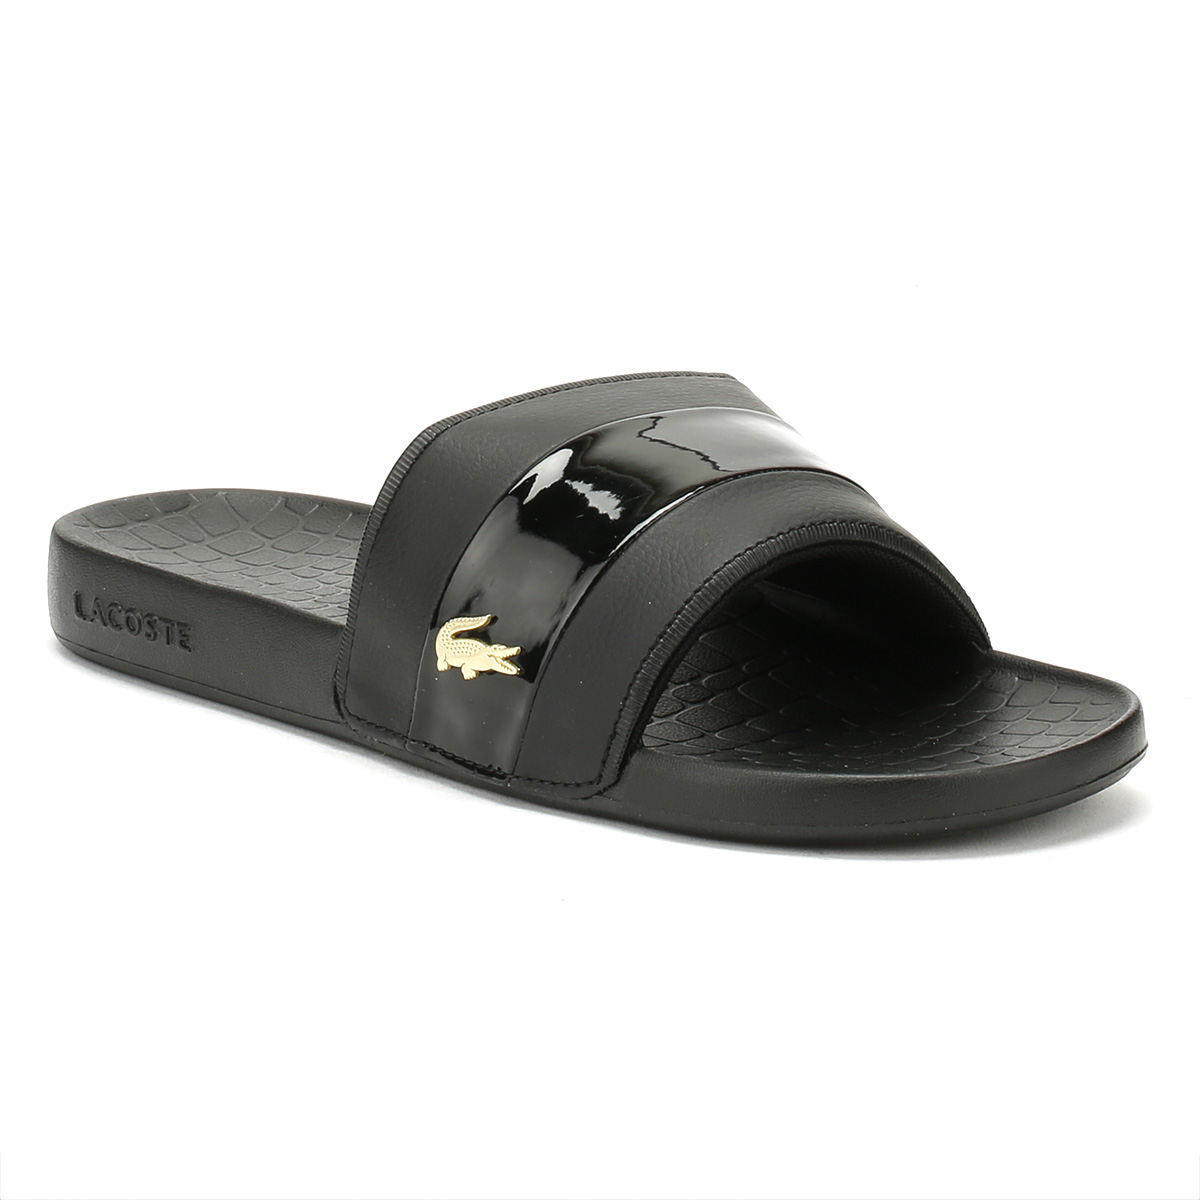 b3e1d82acfa5 Details about Lacoste Mens Black   Gold Fraisier 118 1 Slides Rubber Beach  Summer Shoes